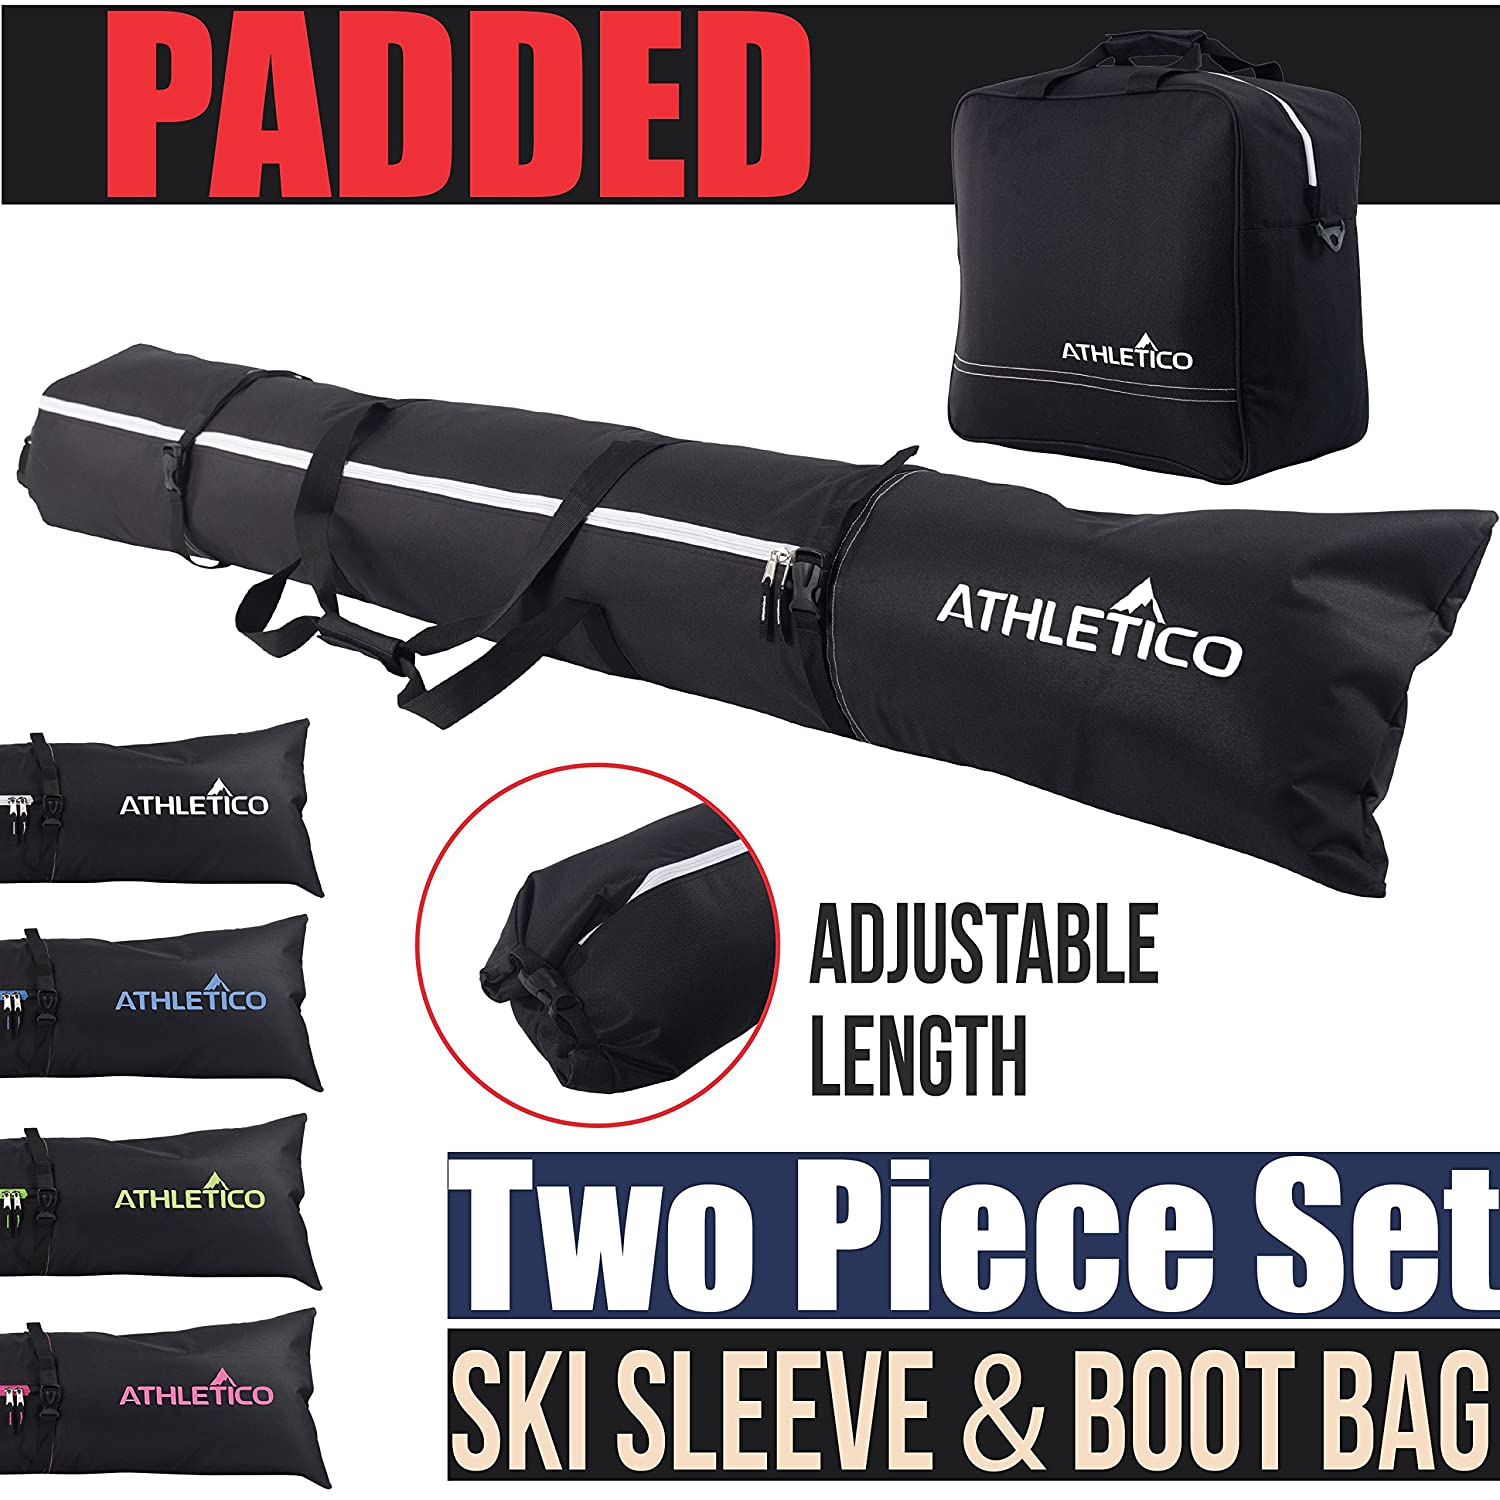 Up To 2 Sets & Poles Sporting Goods Snowboard Accessories TSE Double Ski Bag 185cms with Padded Binding Protection